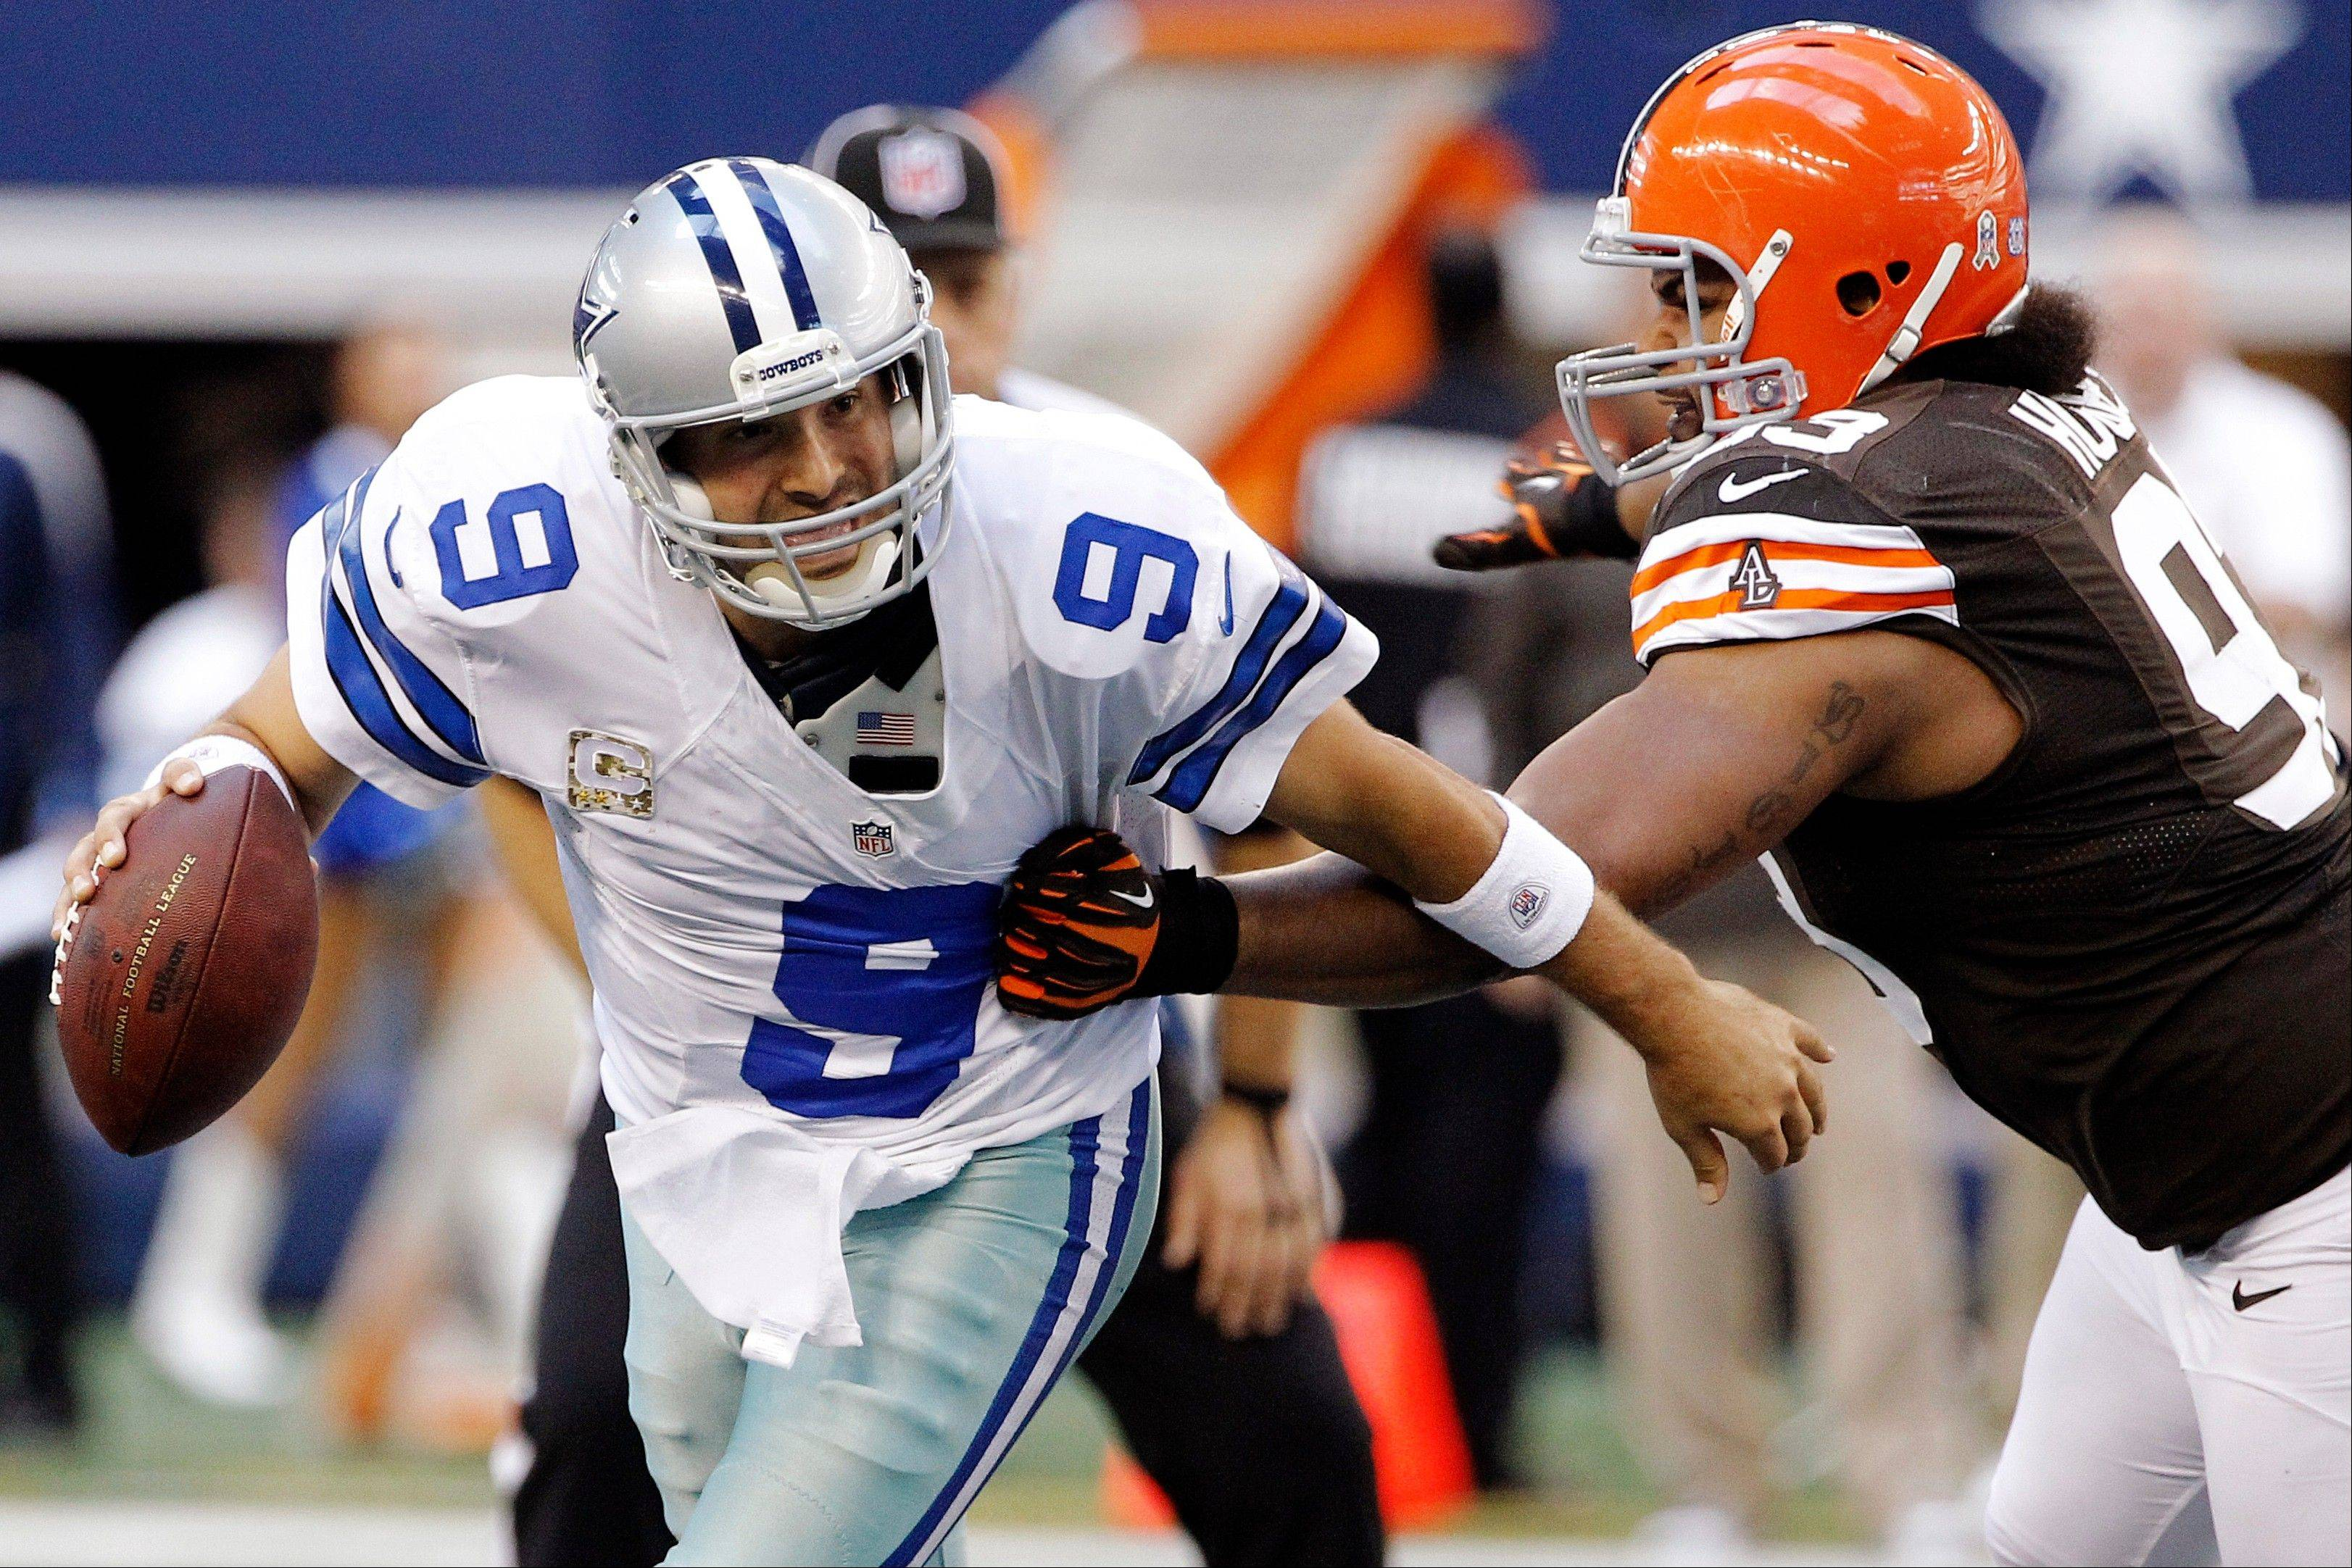 Dallas Cowboys quarterback Tony Romo (9) escapes a tackle attempt by Cleveland Browns' John Hughes (93) in the second half Sunday in Arlington, Texas.